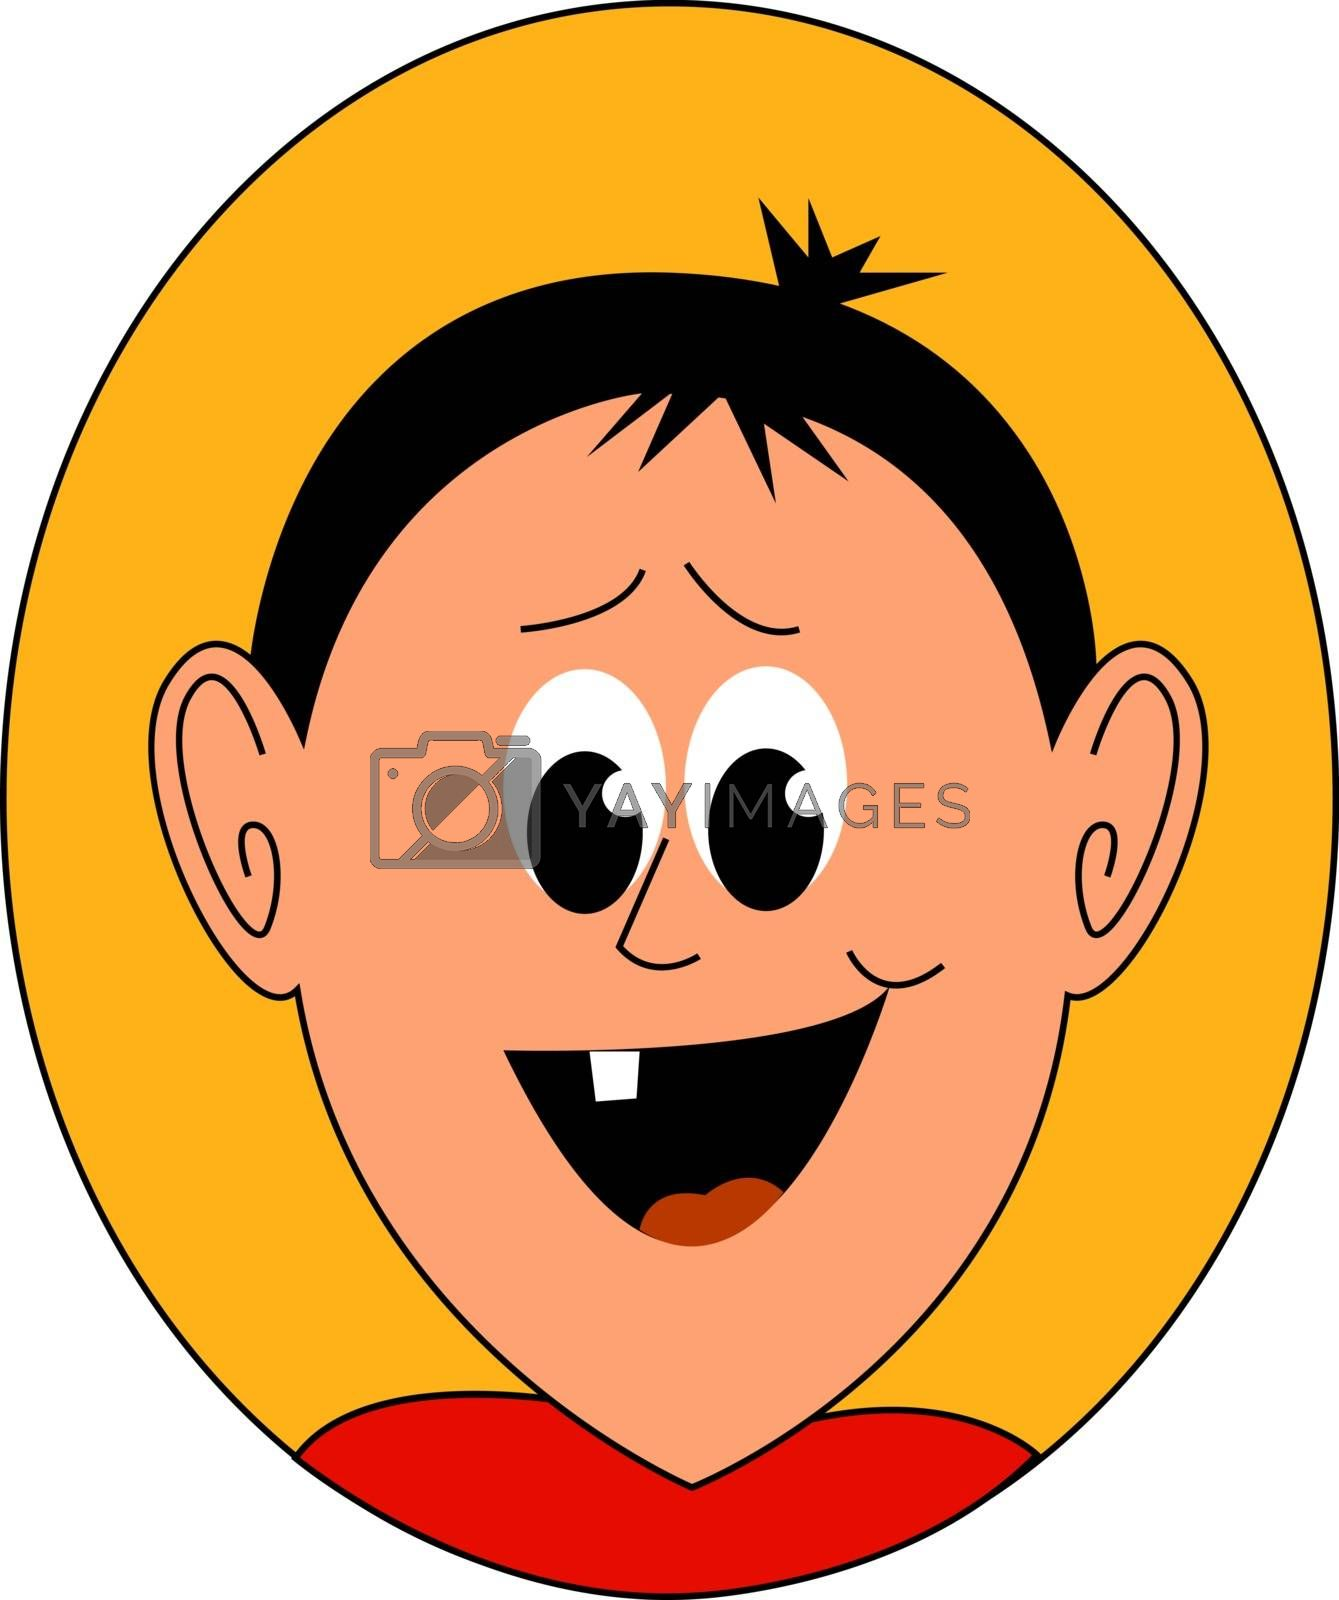 Boy with broken tooth, illustration, vector on white background.